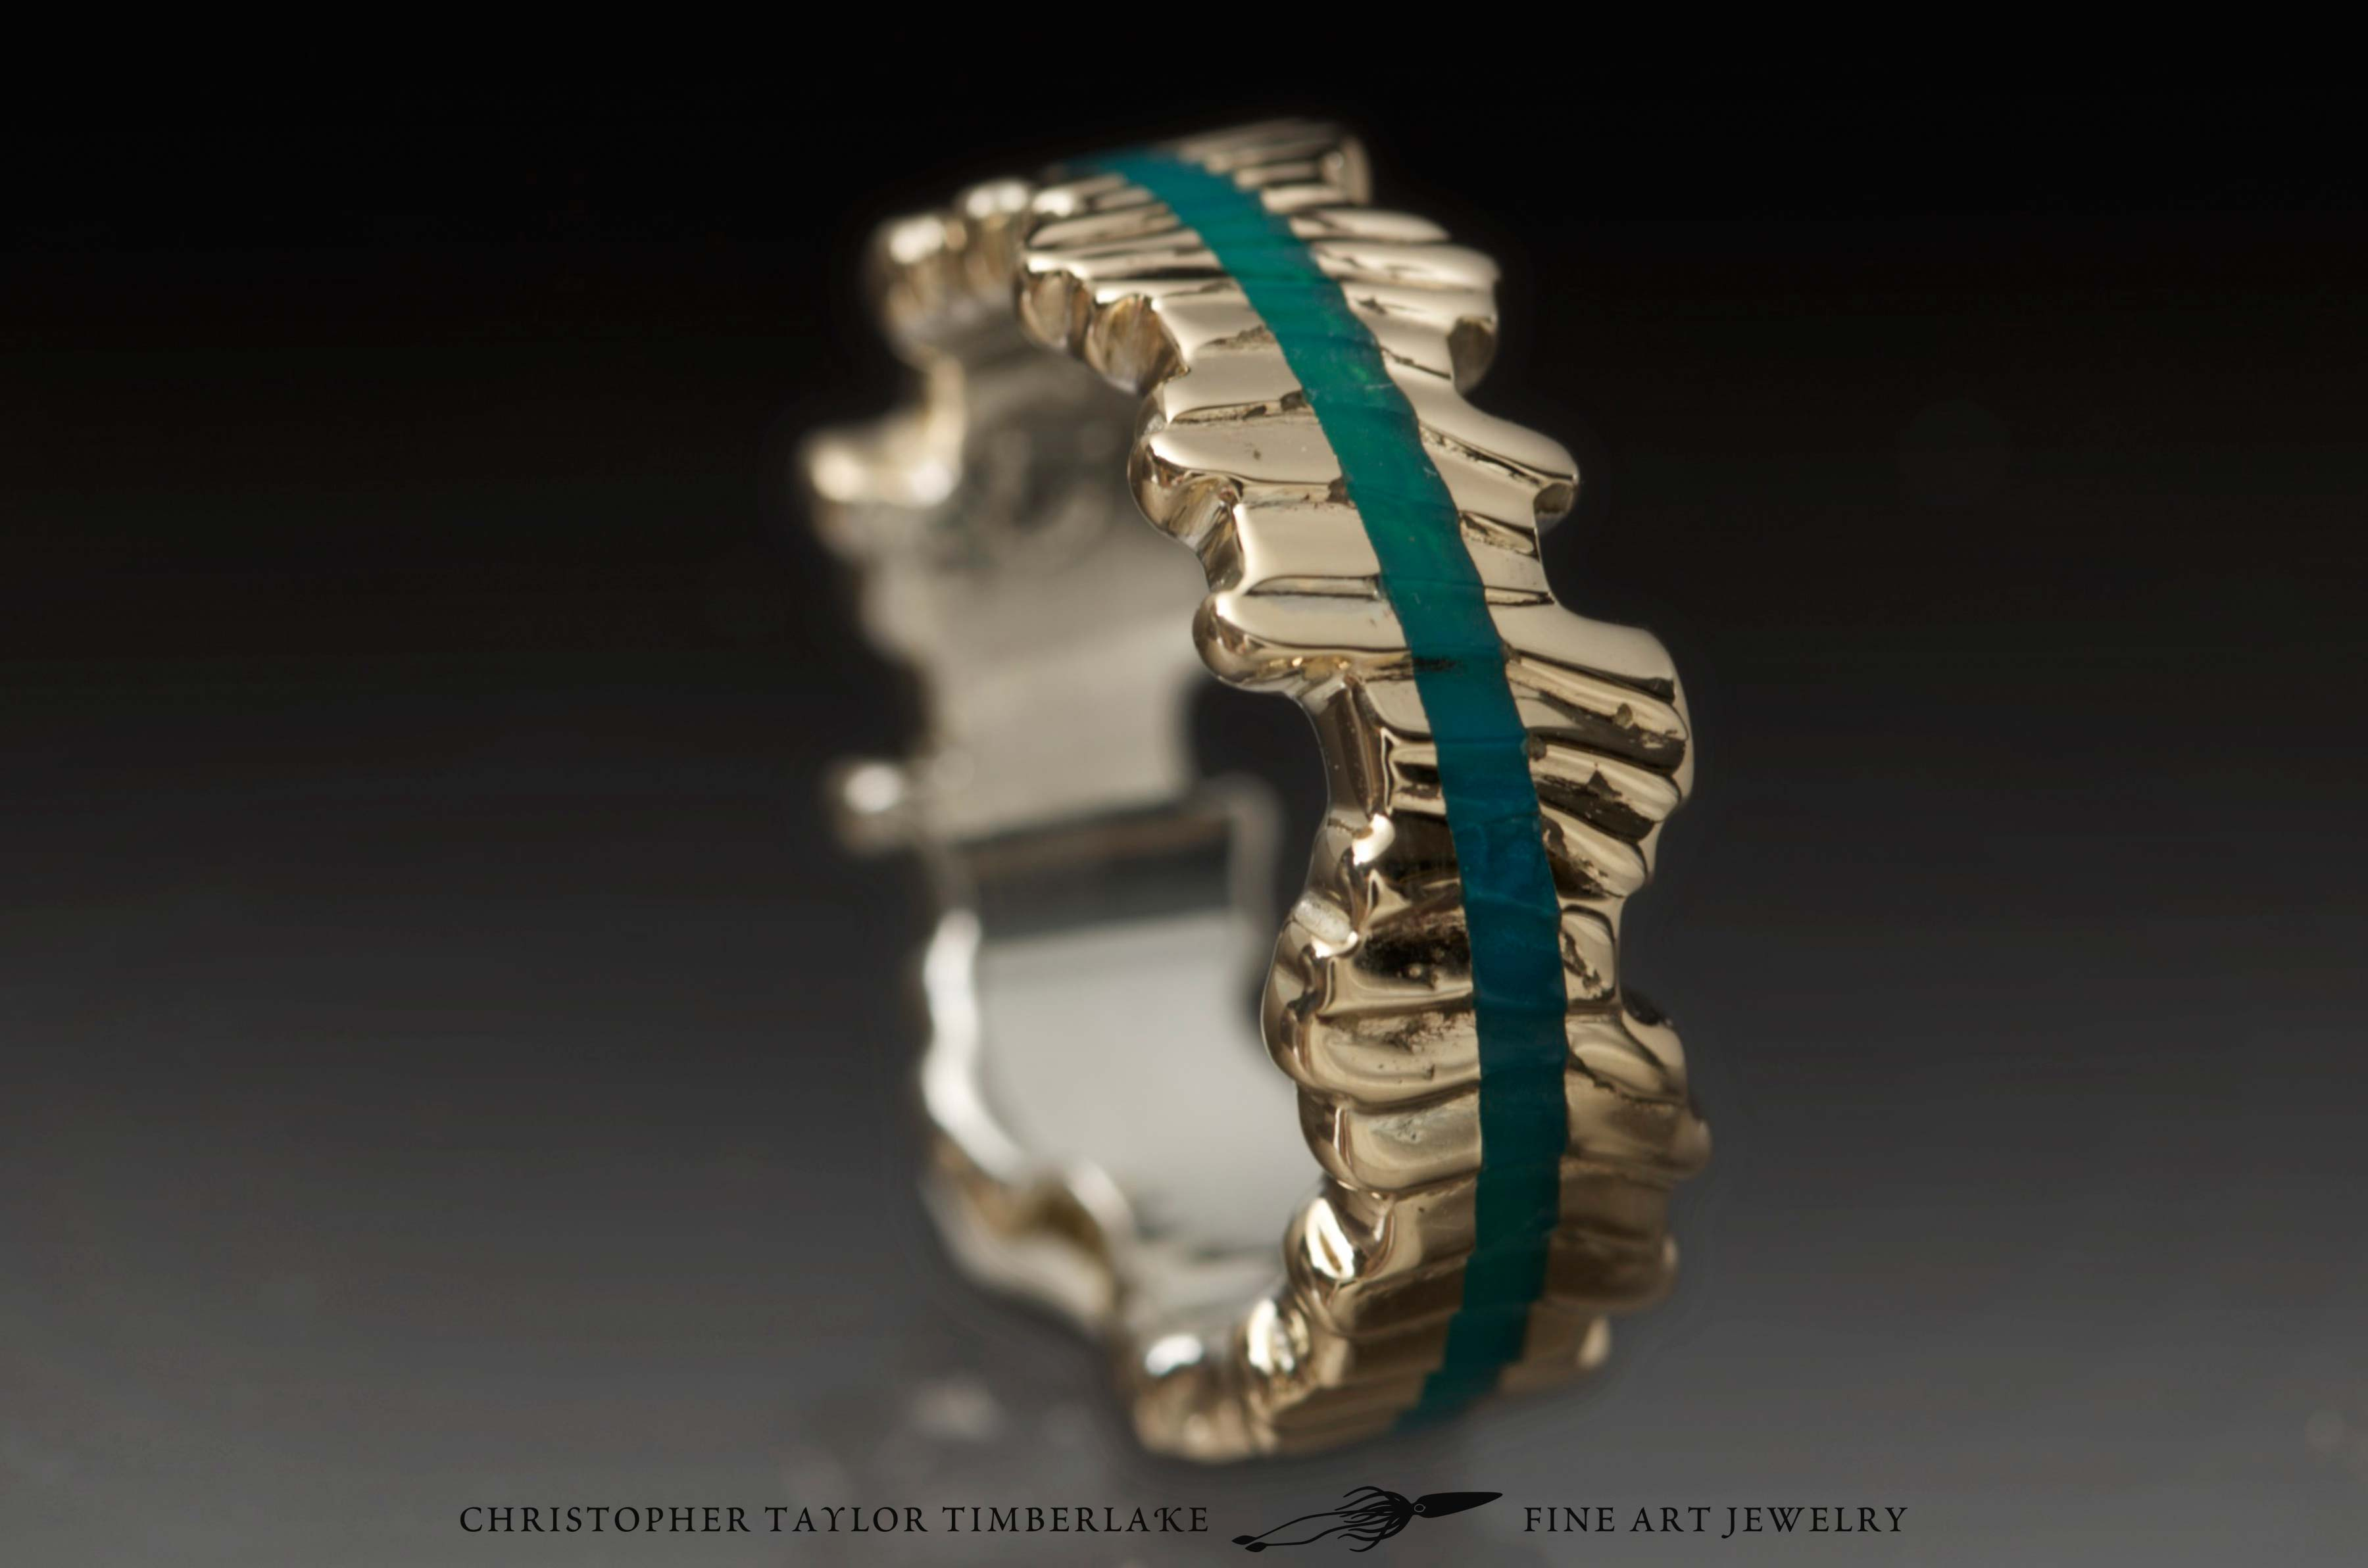 Cuttlefish Cast 10K Yellow Gold Ring With Gem Silica Inlay